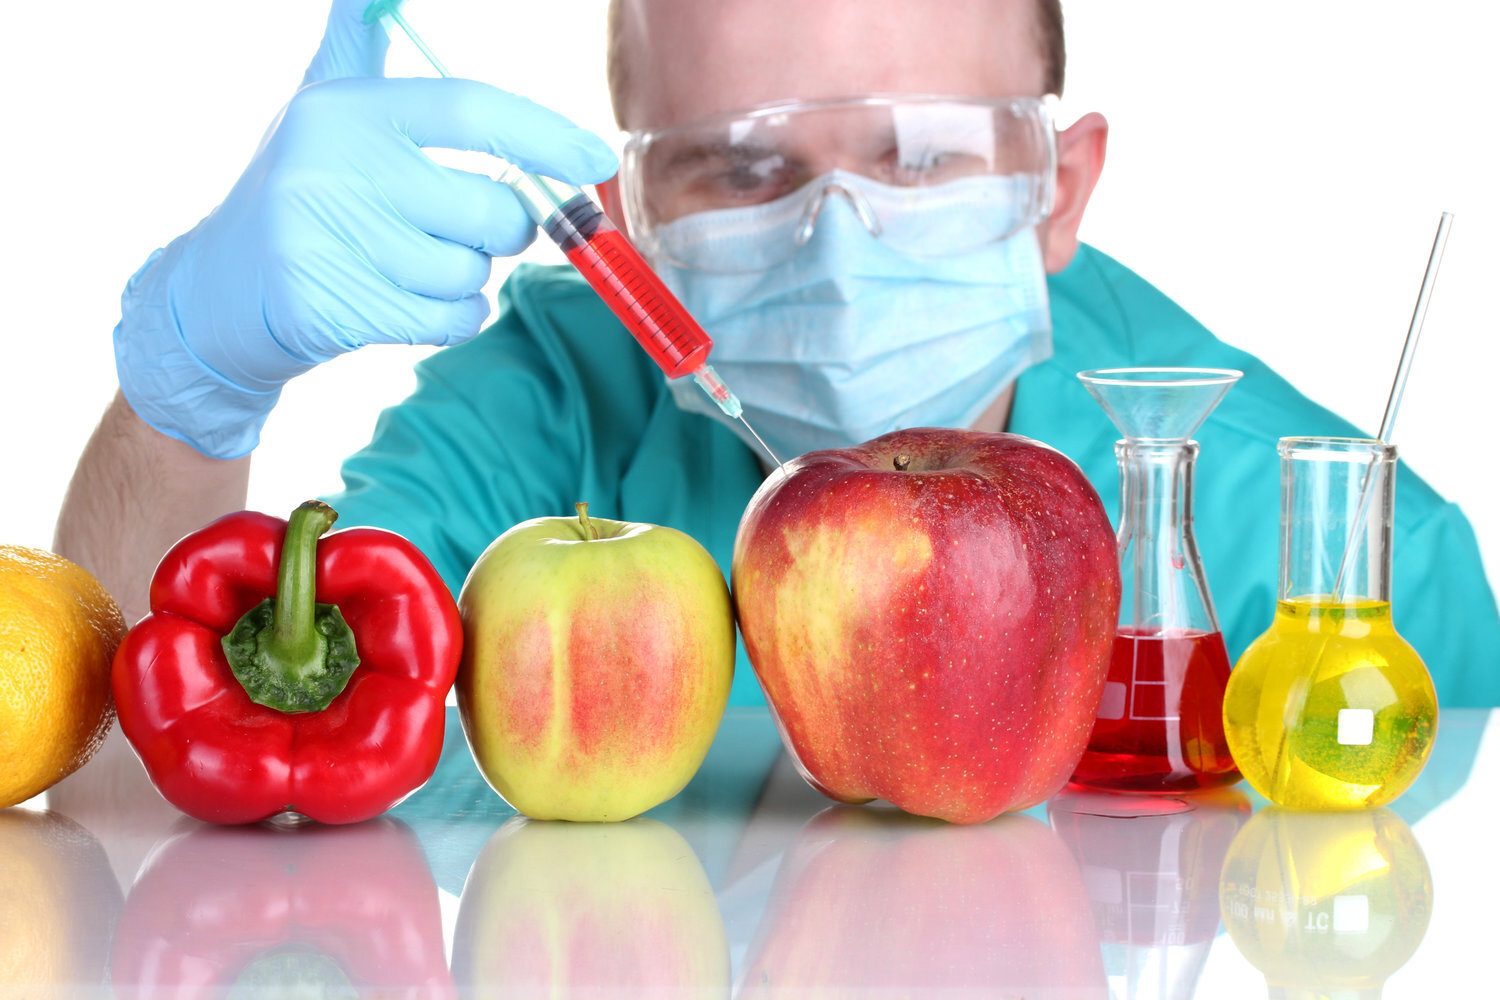 Food Fraud and Ethical Food Production